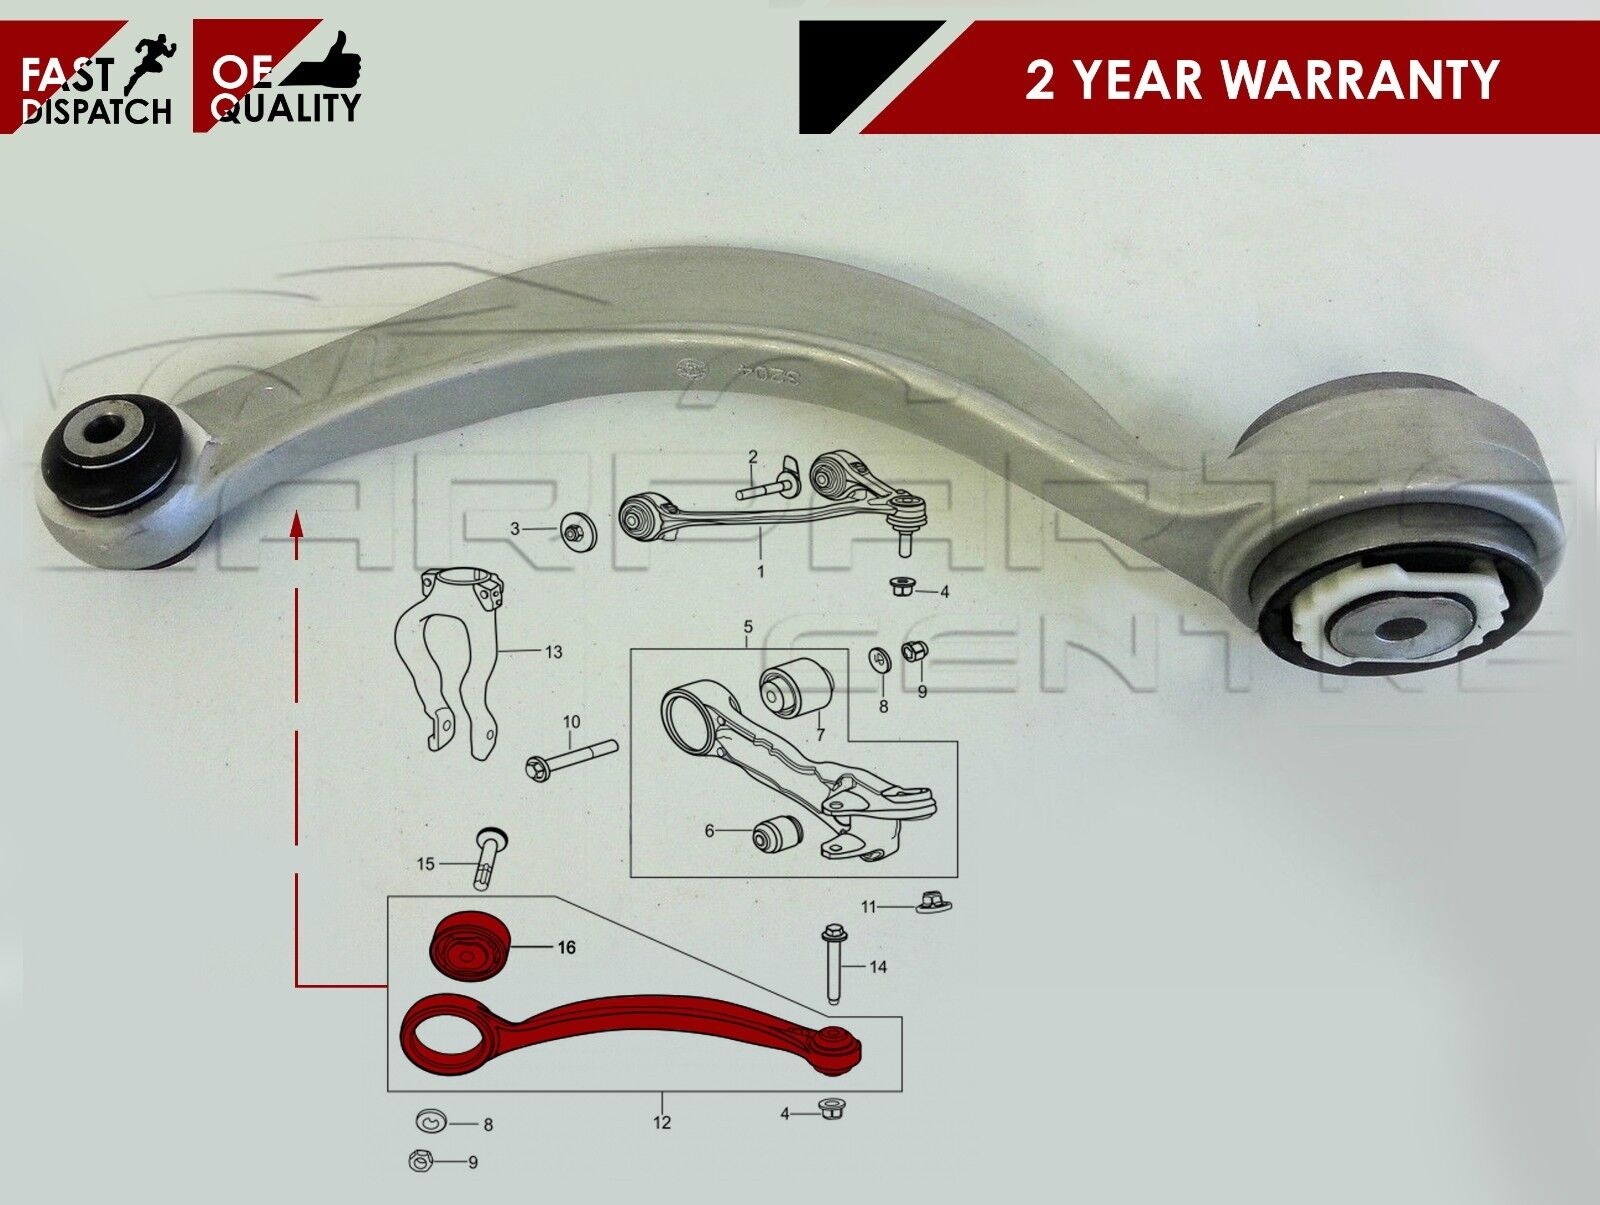 For Jaguar S Type Xj Xf Front Suspension Lower Wishbone Track 2008 Volkswagen Beetle Components Car Parts Diagram Control Arm Curved